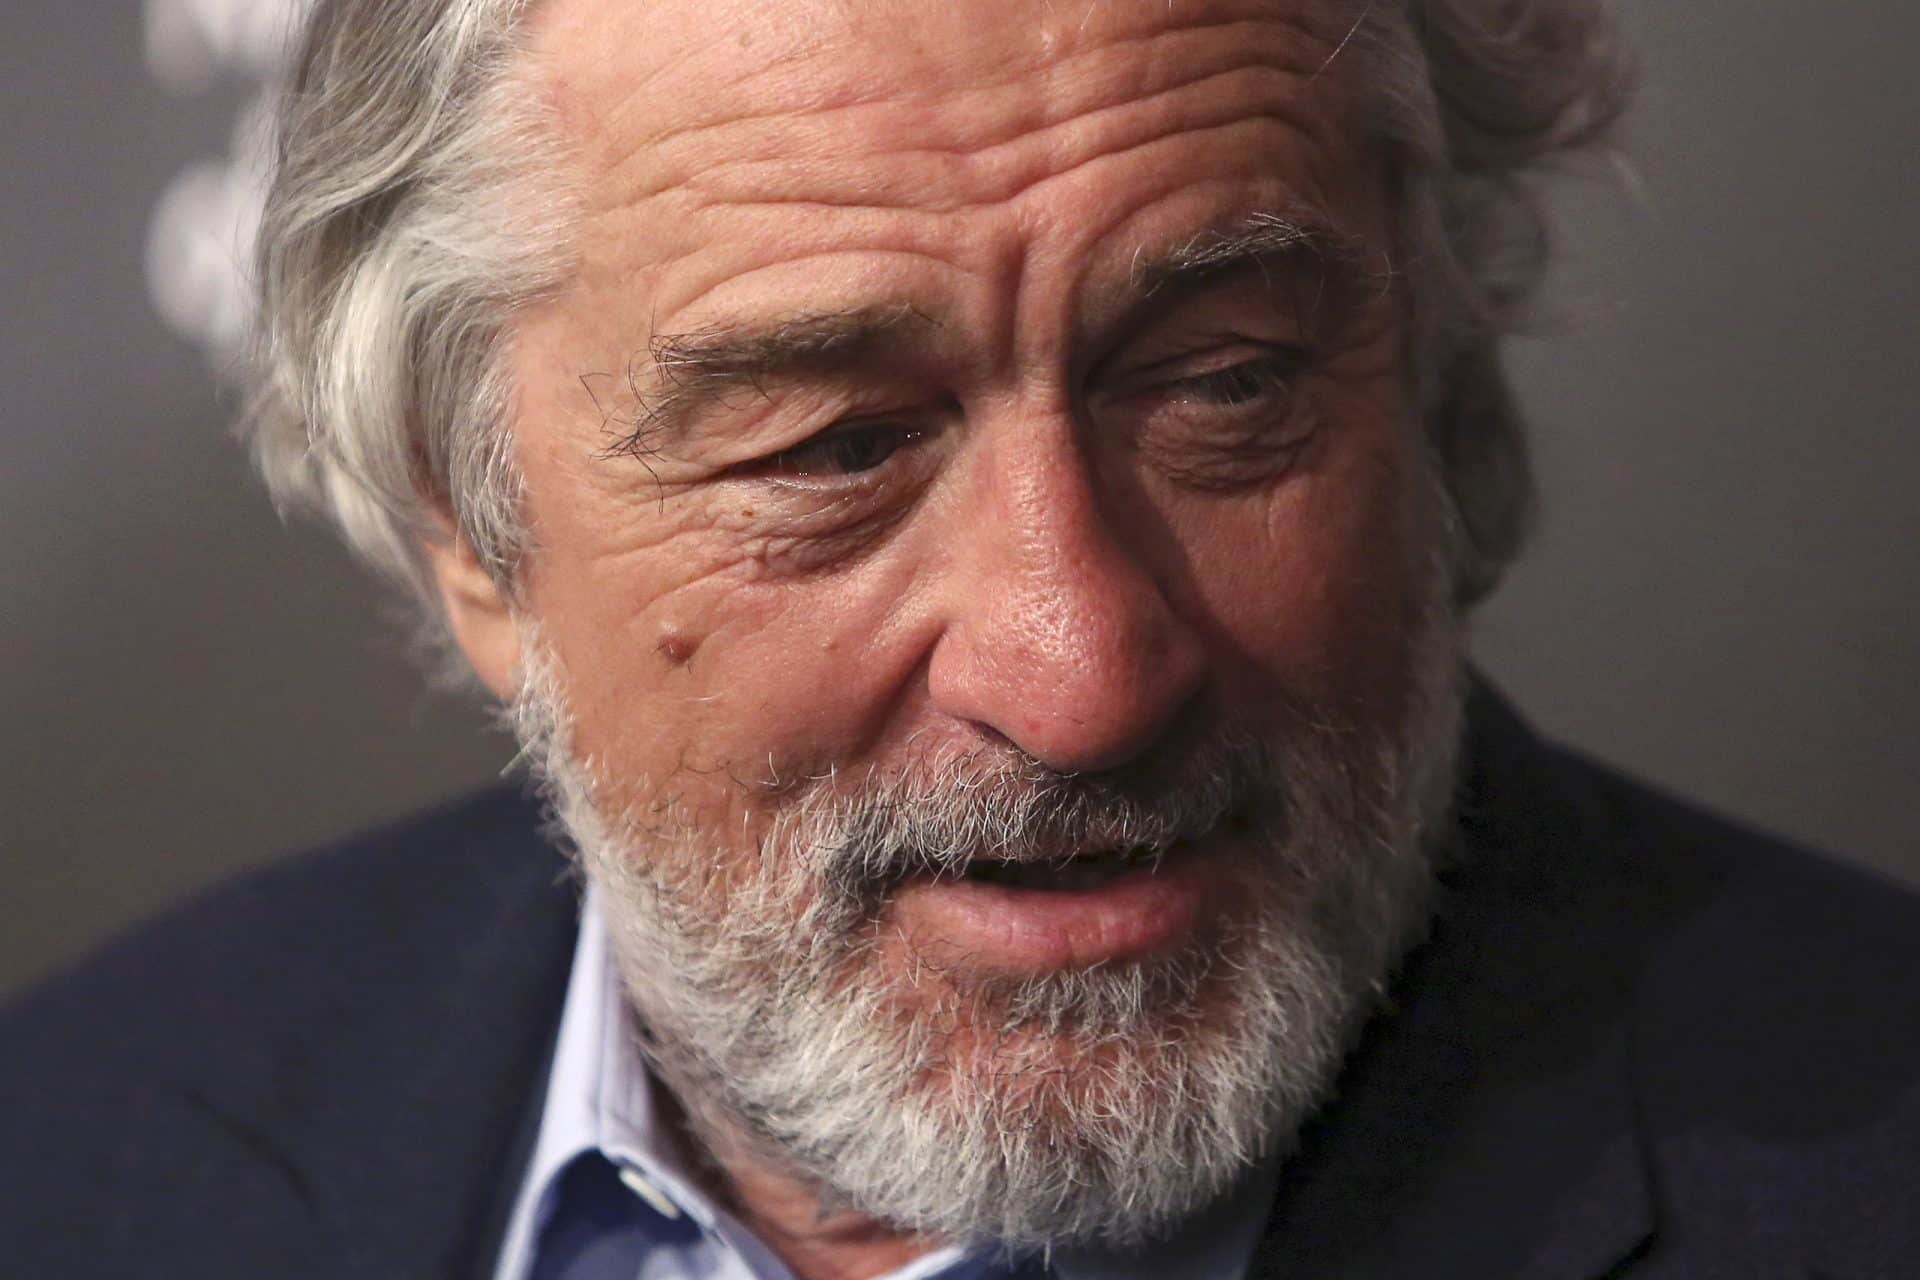 Though he has never consistently ranked as one of the industrys most popular or highly paid stars Robert De Niro is recognized